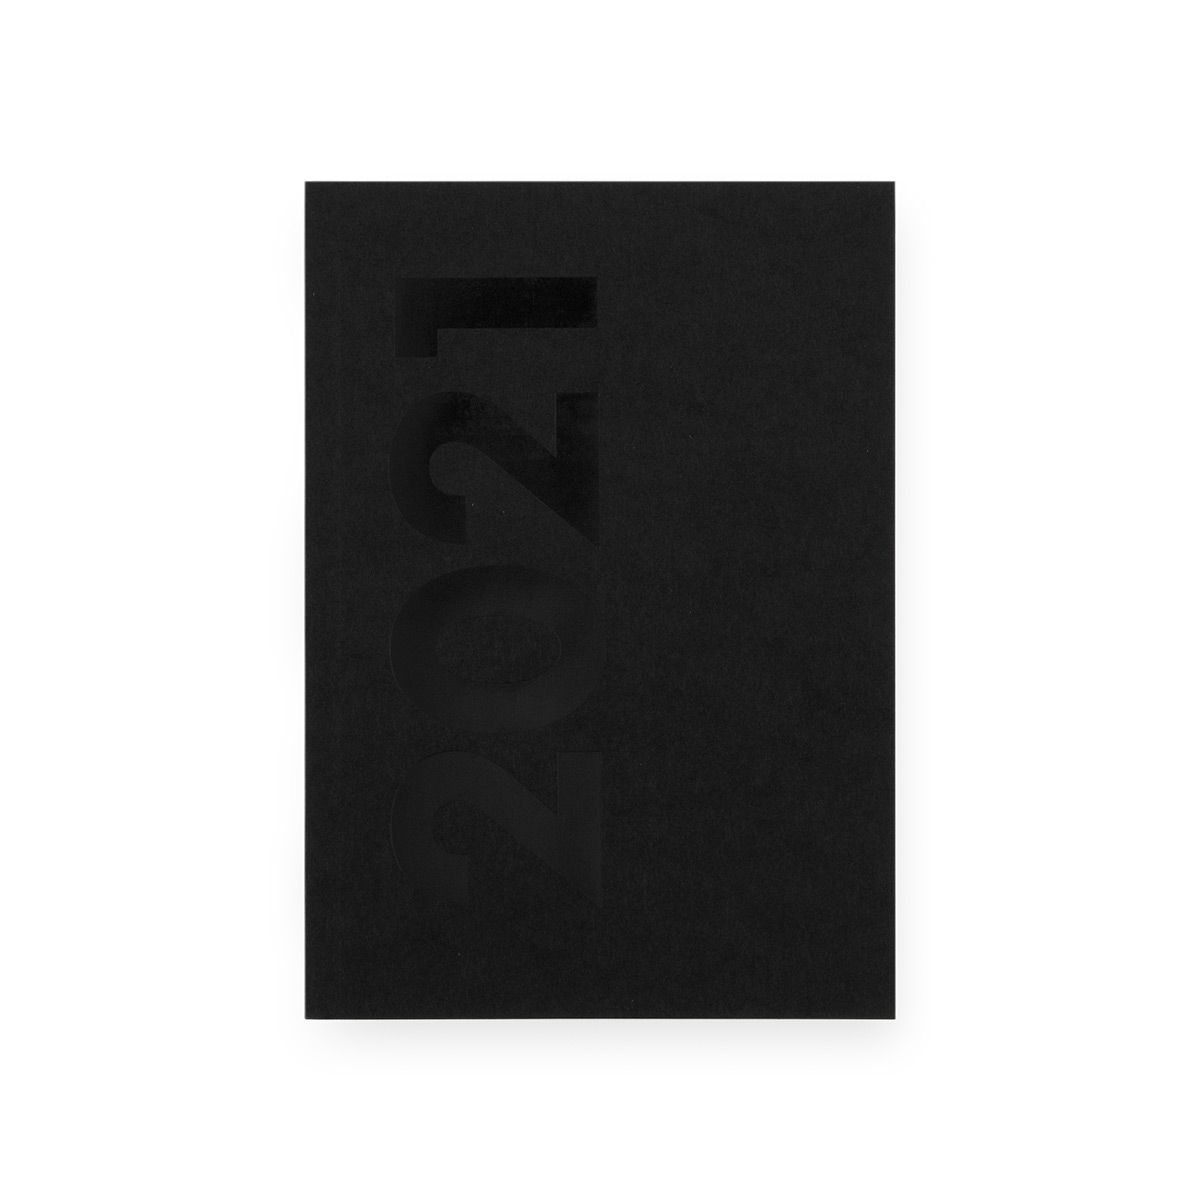 Diary 2021 INSERT BOOKLET Ordning and Reda